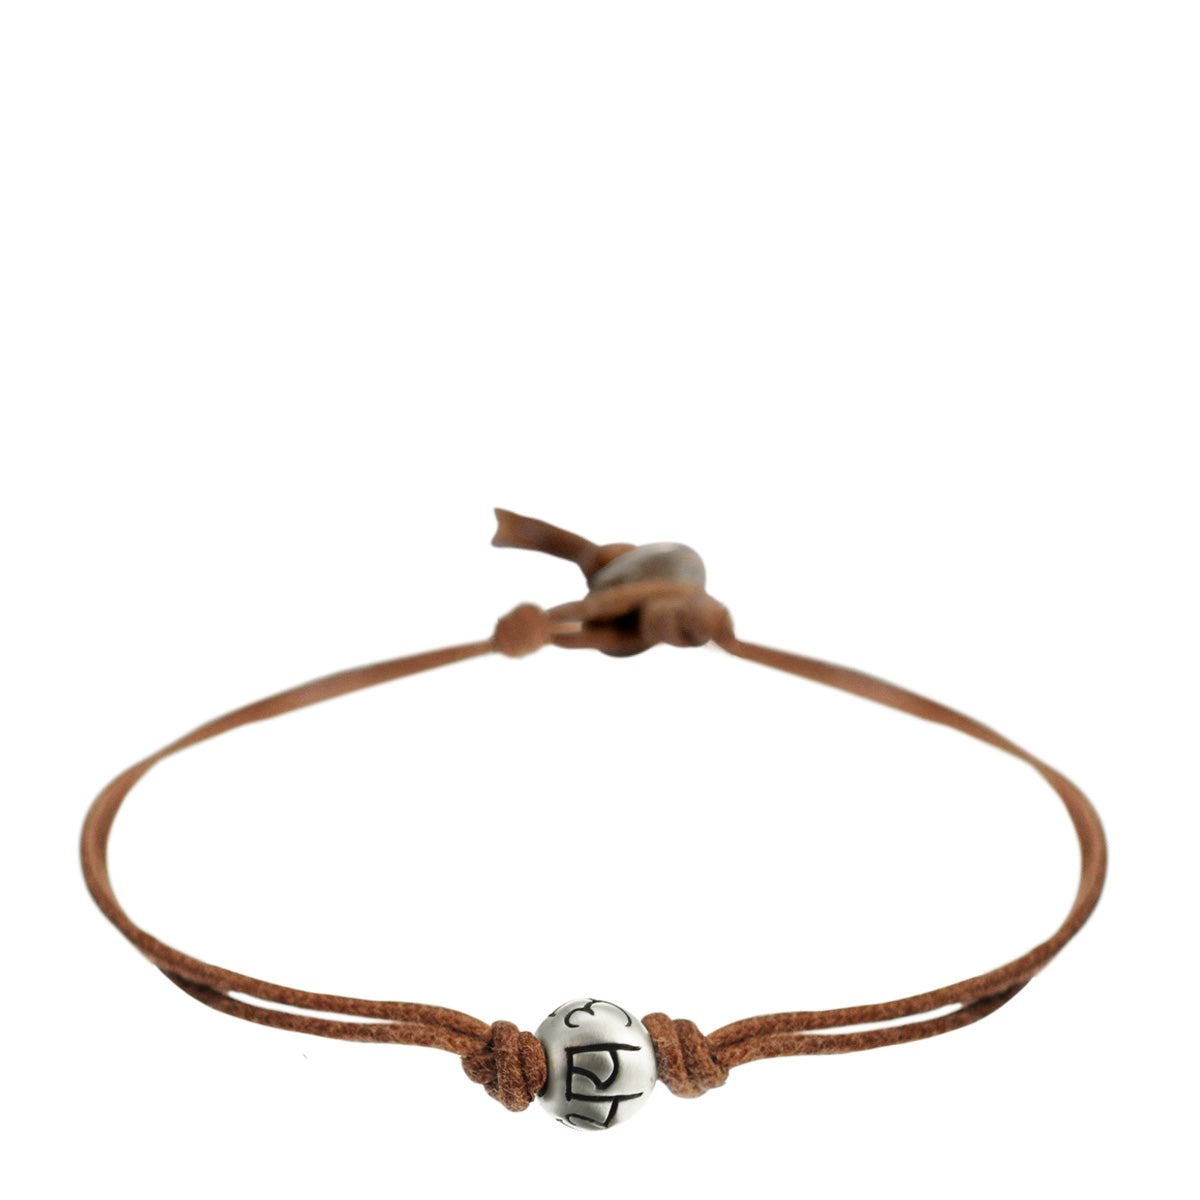 Men's Sterling Silver Fearlessness Bead Bracelet on Natural Cord with Button Closure